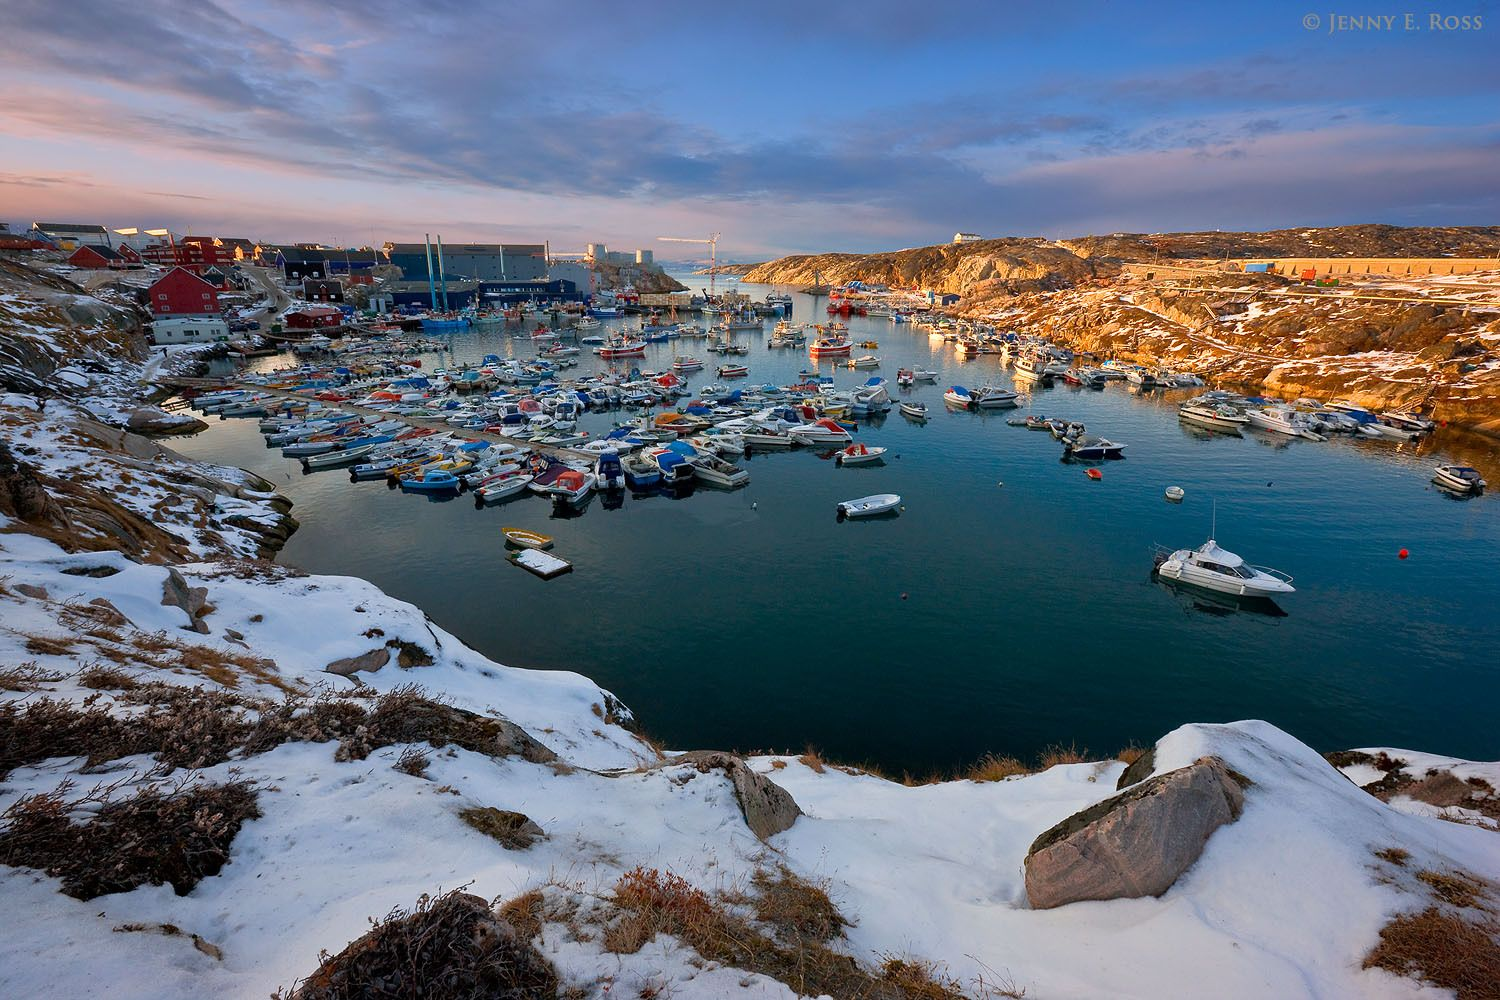 The Ilulissat harbor, filled with fishing boats, in a small fjord connected to Disko Bay in West Greenland.